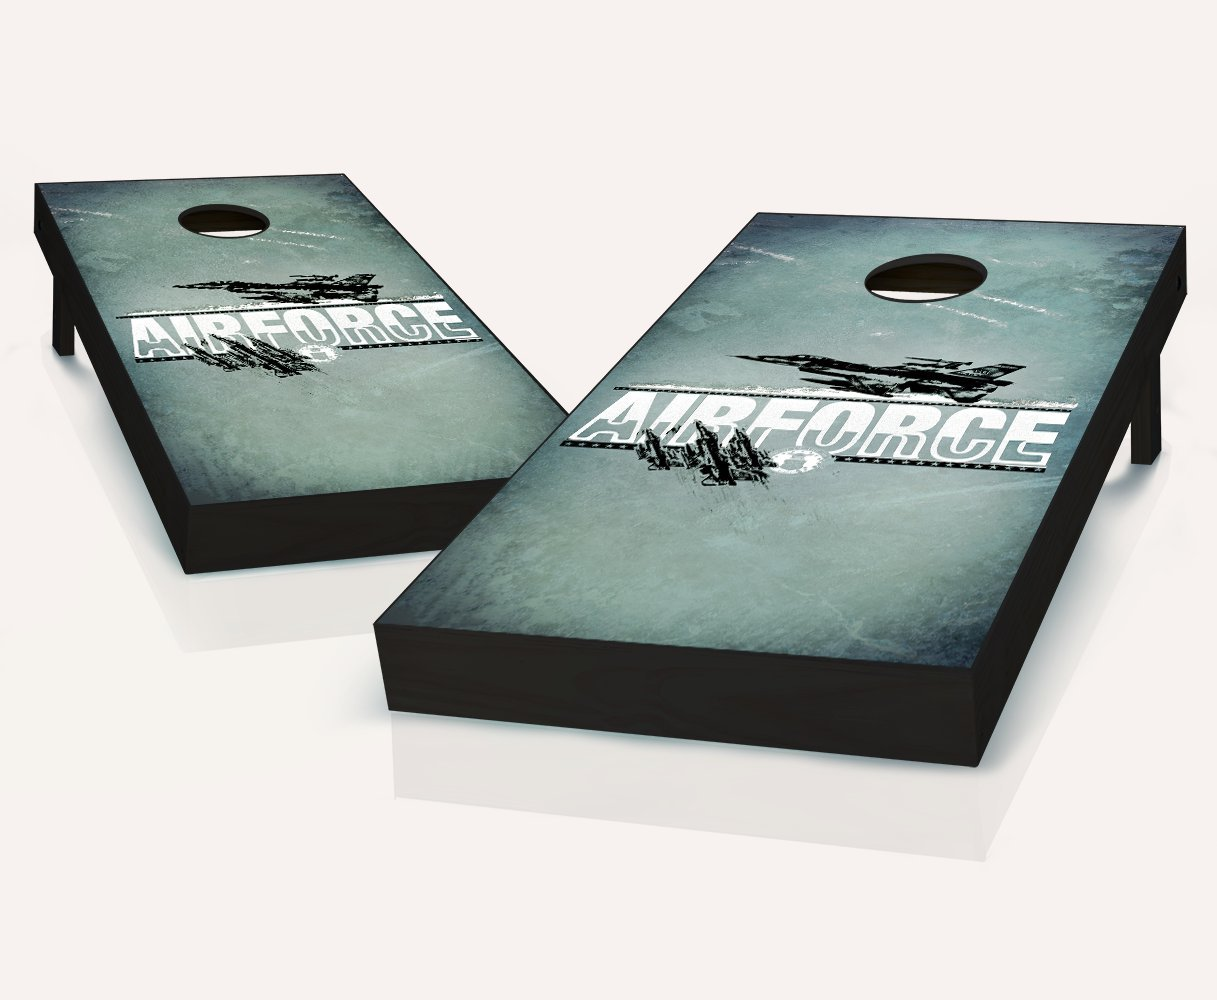 US Air ForceインプリントCornhole Boards withのセット8 Cornhole Bags B079Z9JPSV